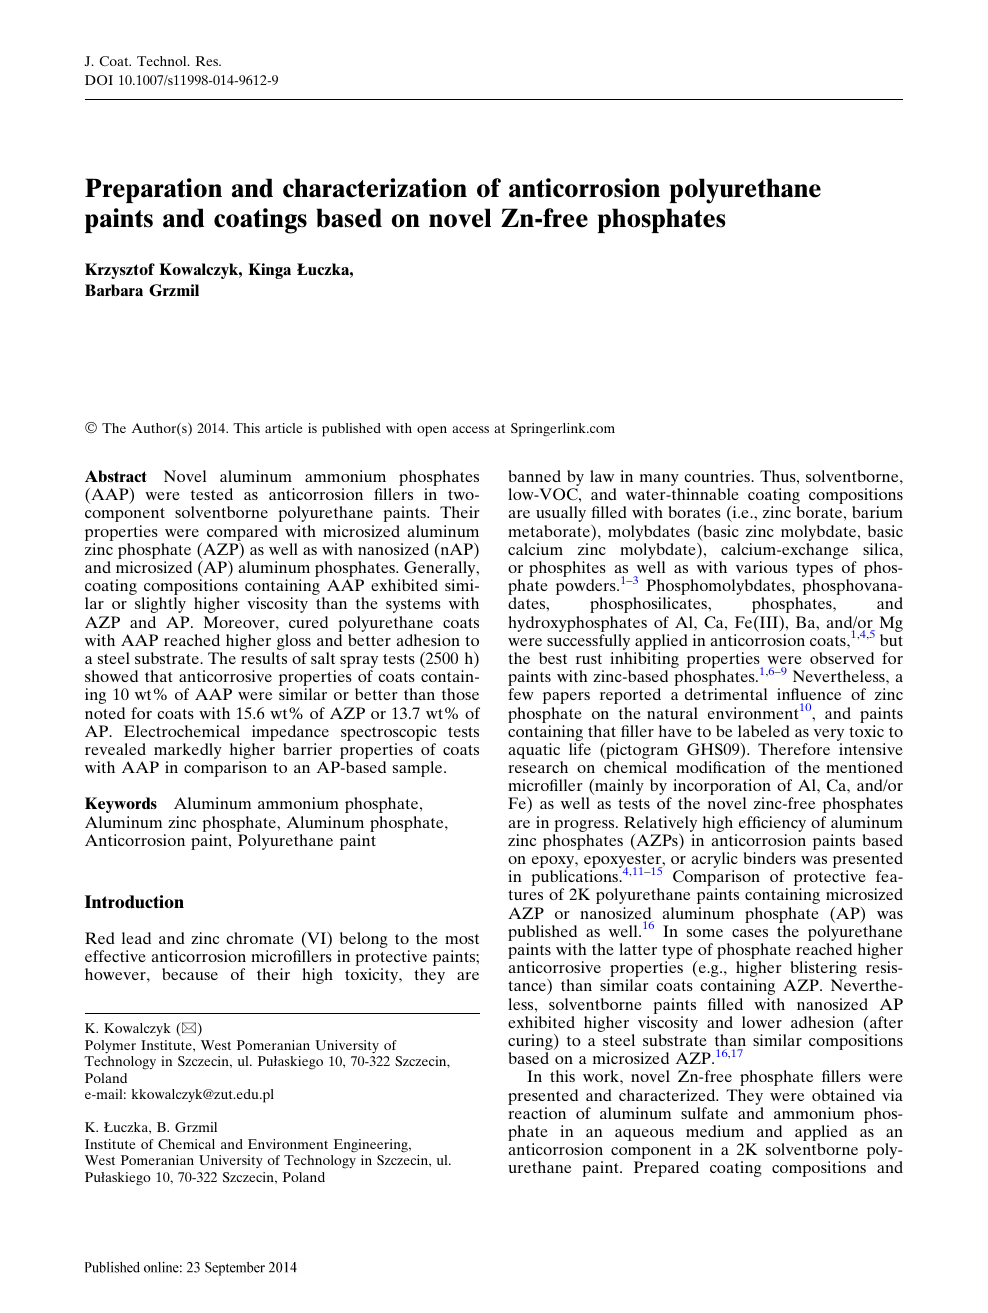 Preparation and characterization of anticorrosion polyurethane